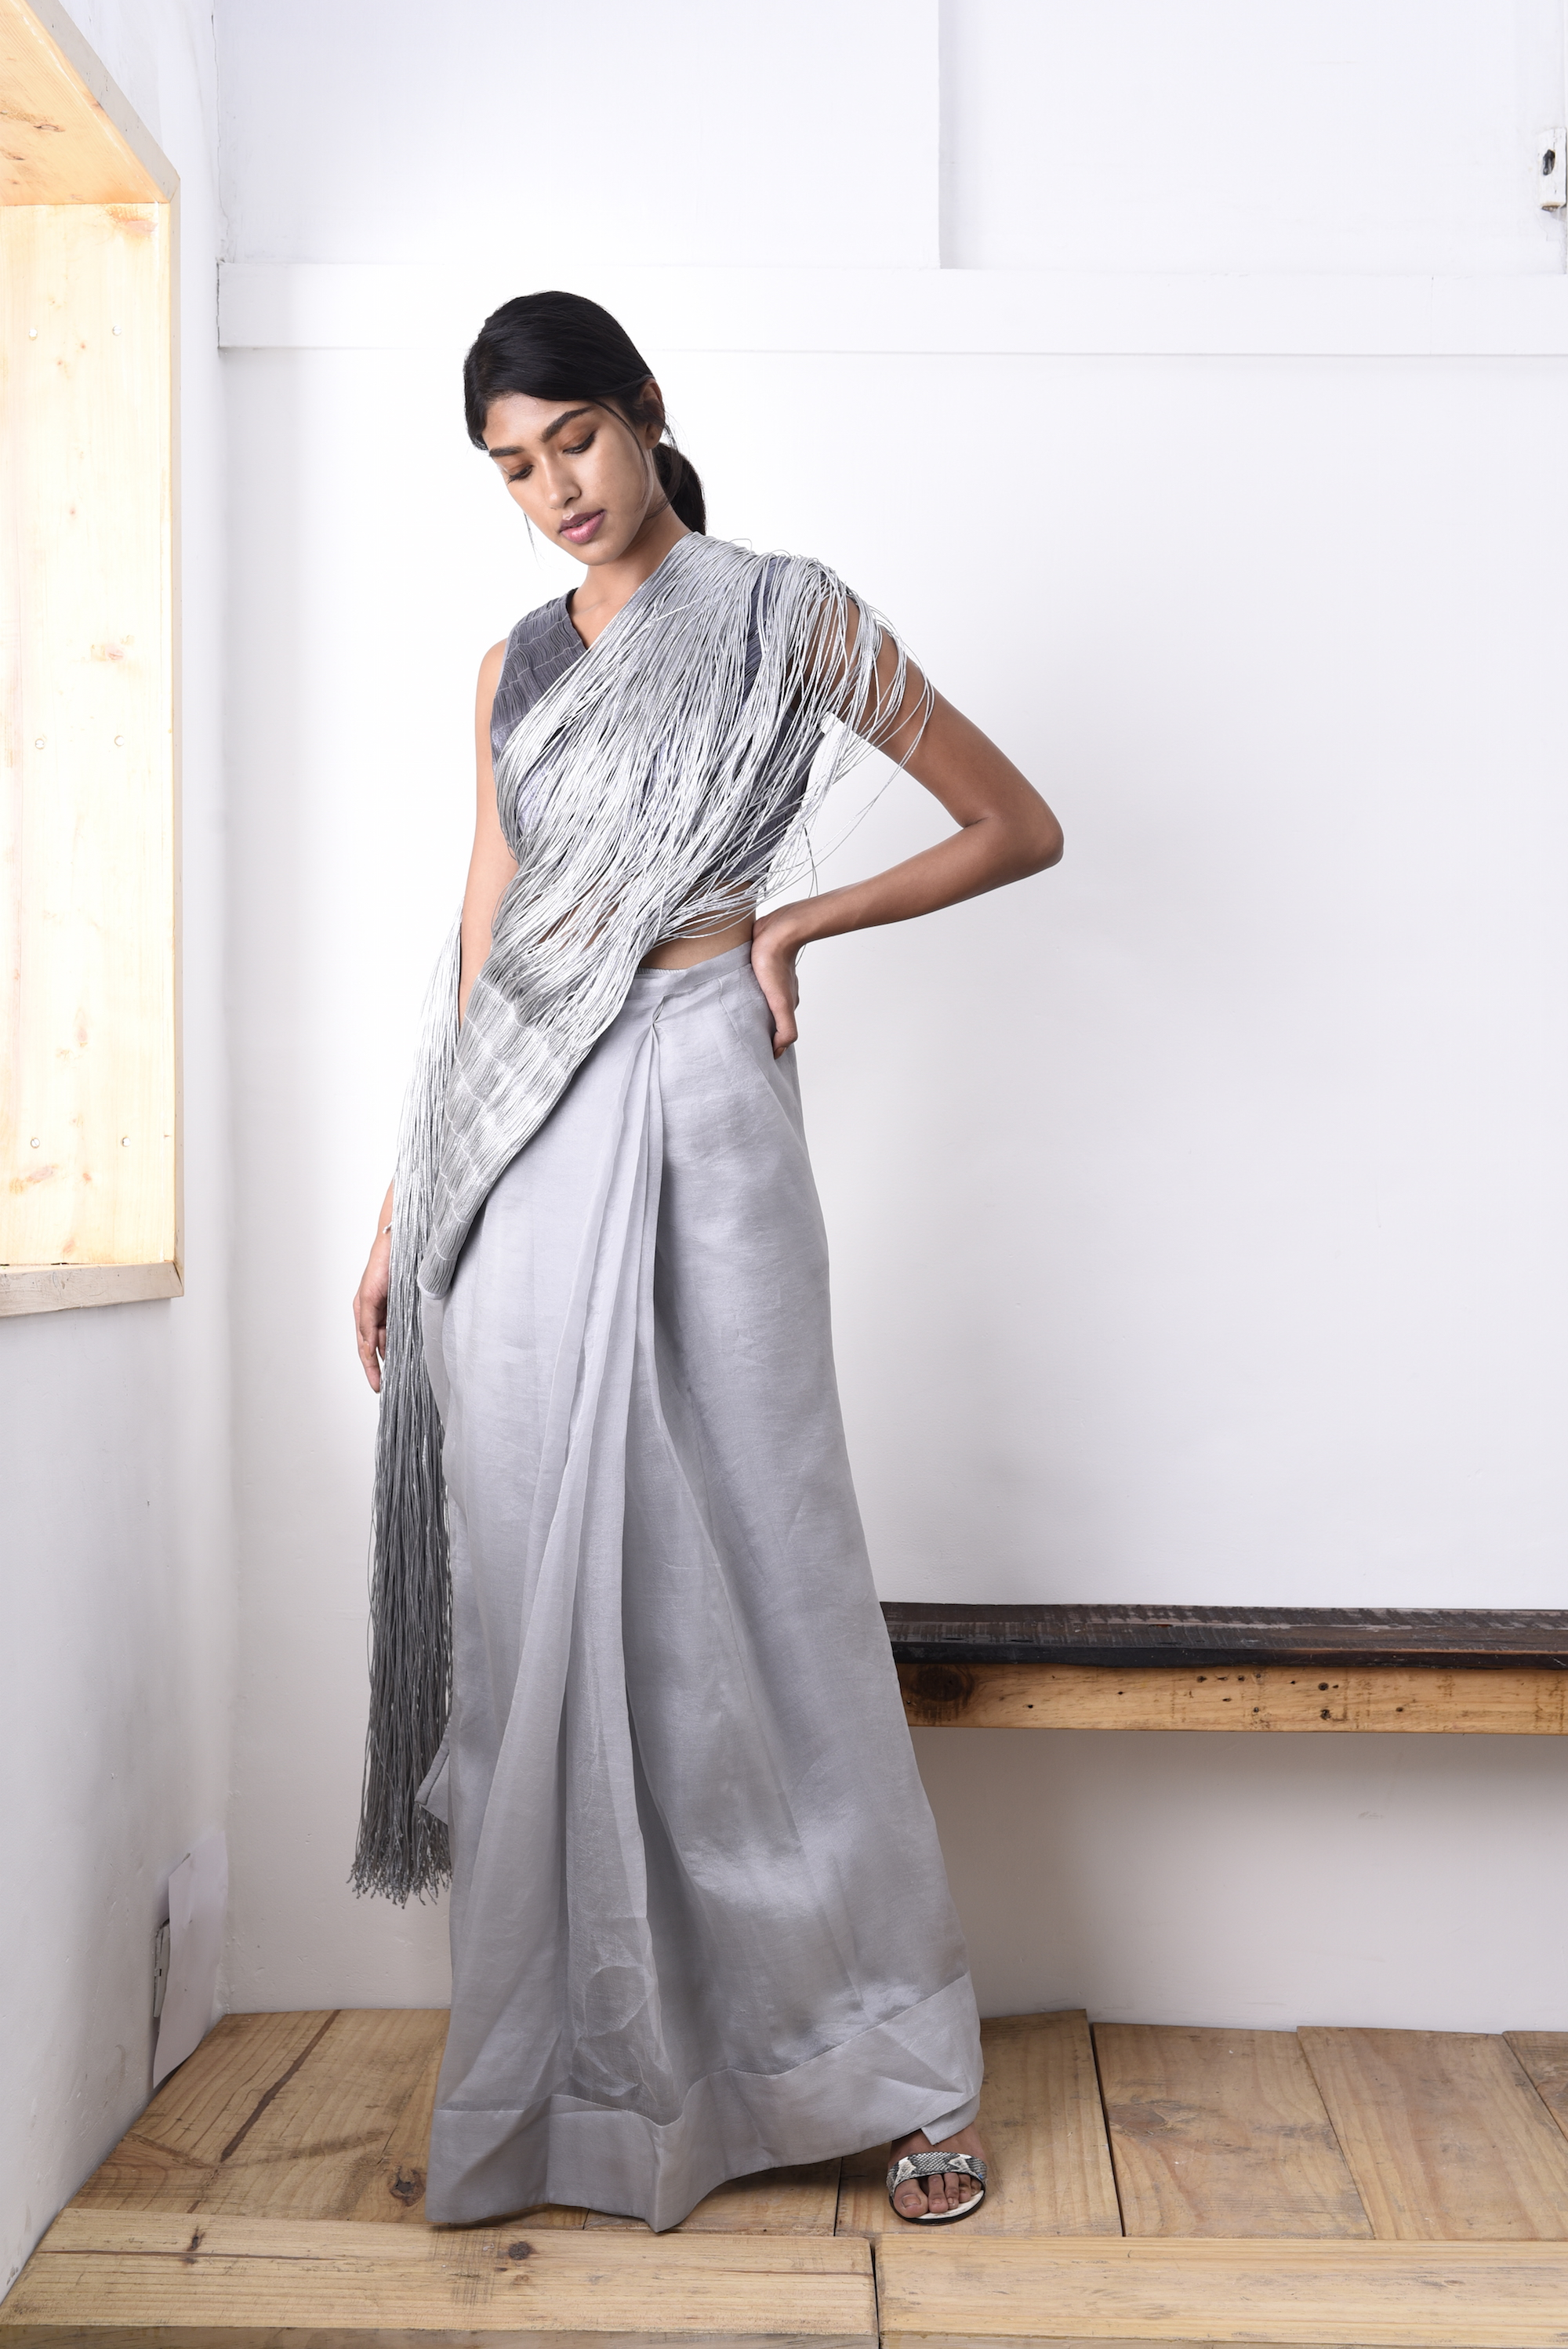 Ciceroni, Diwali shopping, saree, your local shopping guide, handloom, trends, rentattali, rimzim dadu, shivan and narresh